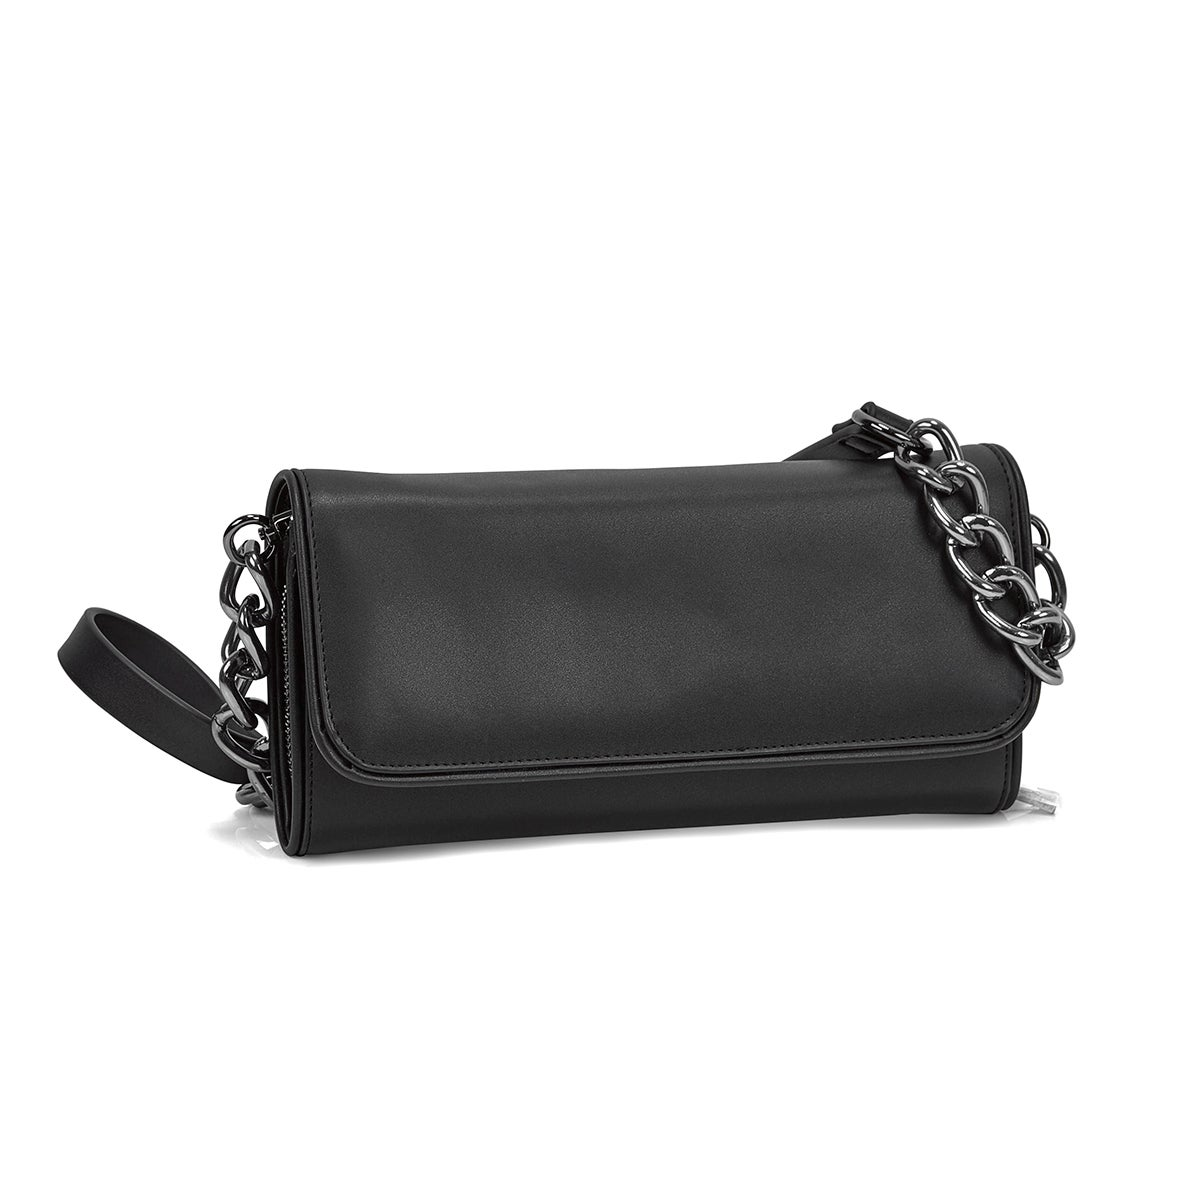 Women's 5563 black cross body bag